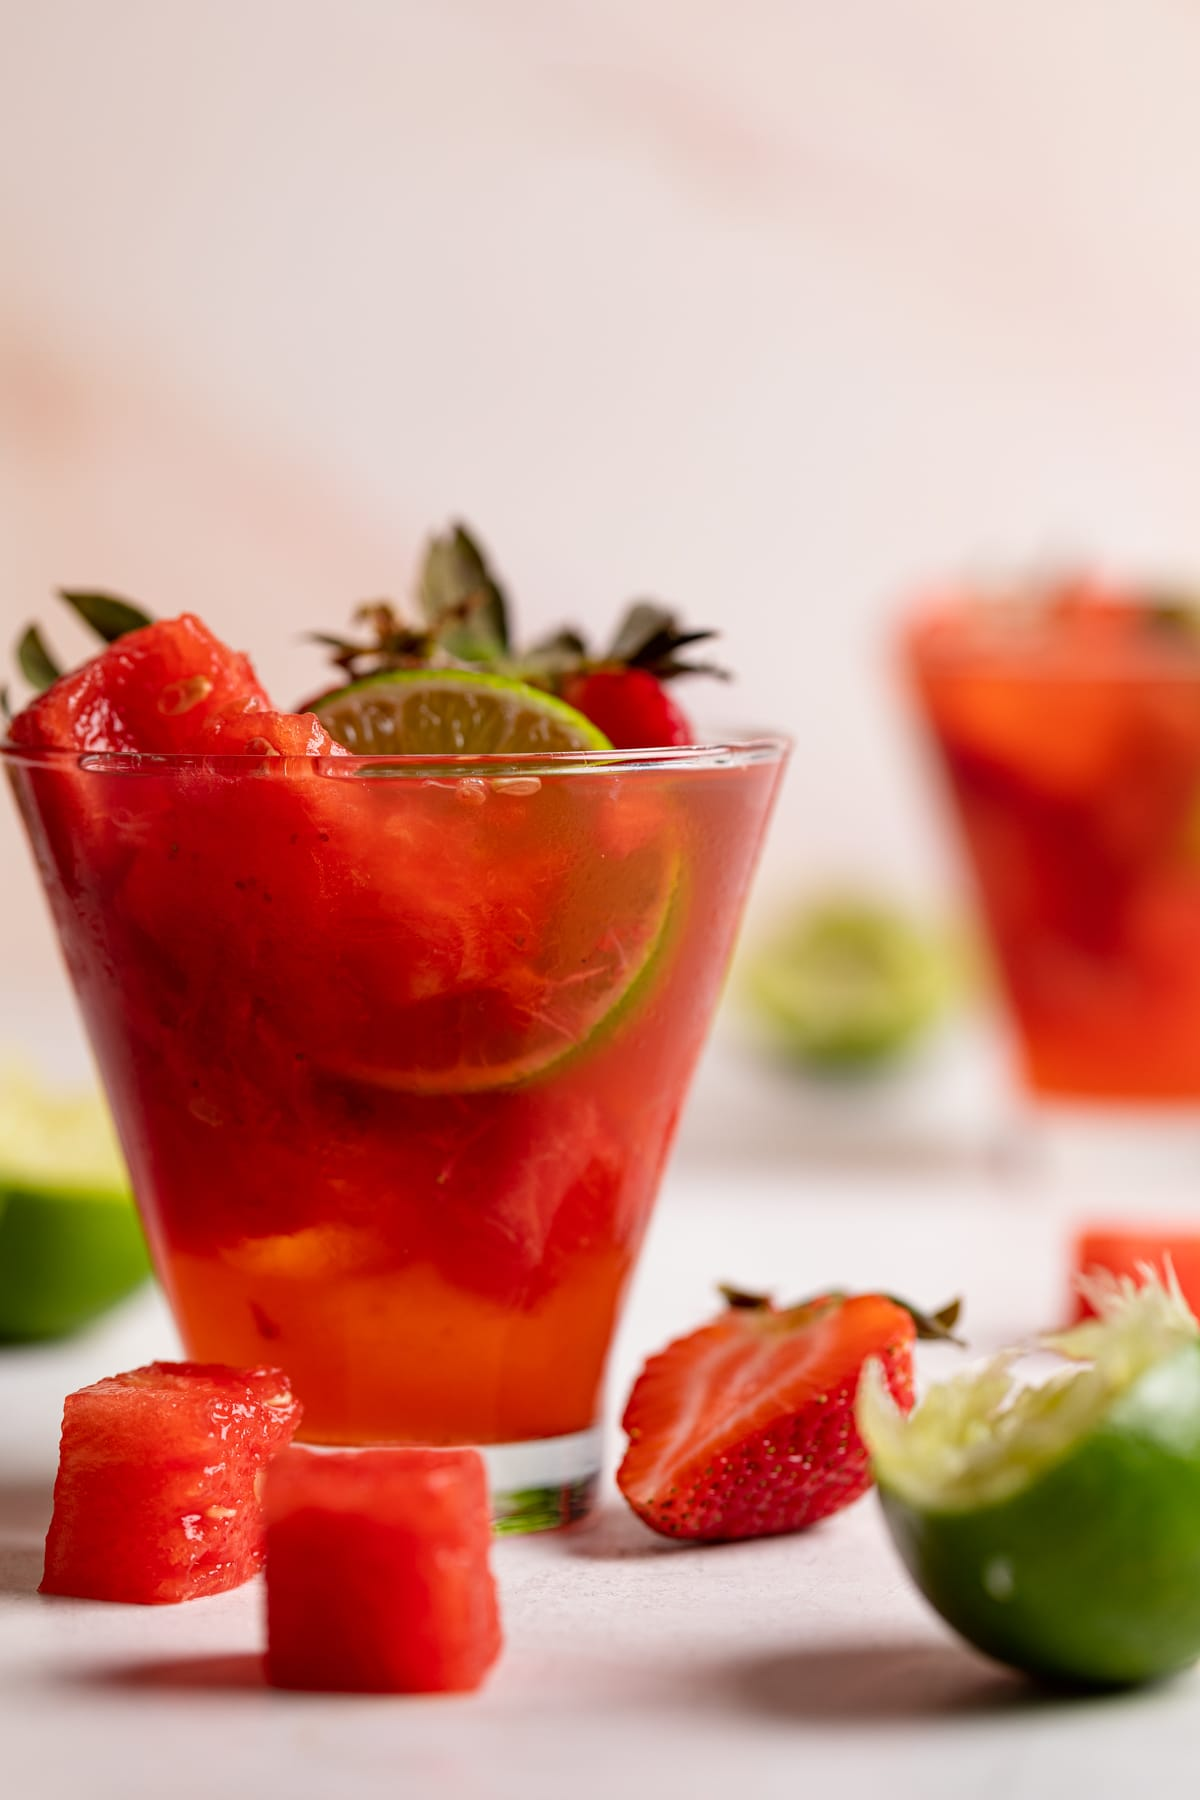 Watermelon Strawberry Lime Mocktail with fresh watermelon cubes and sliced berries